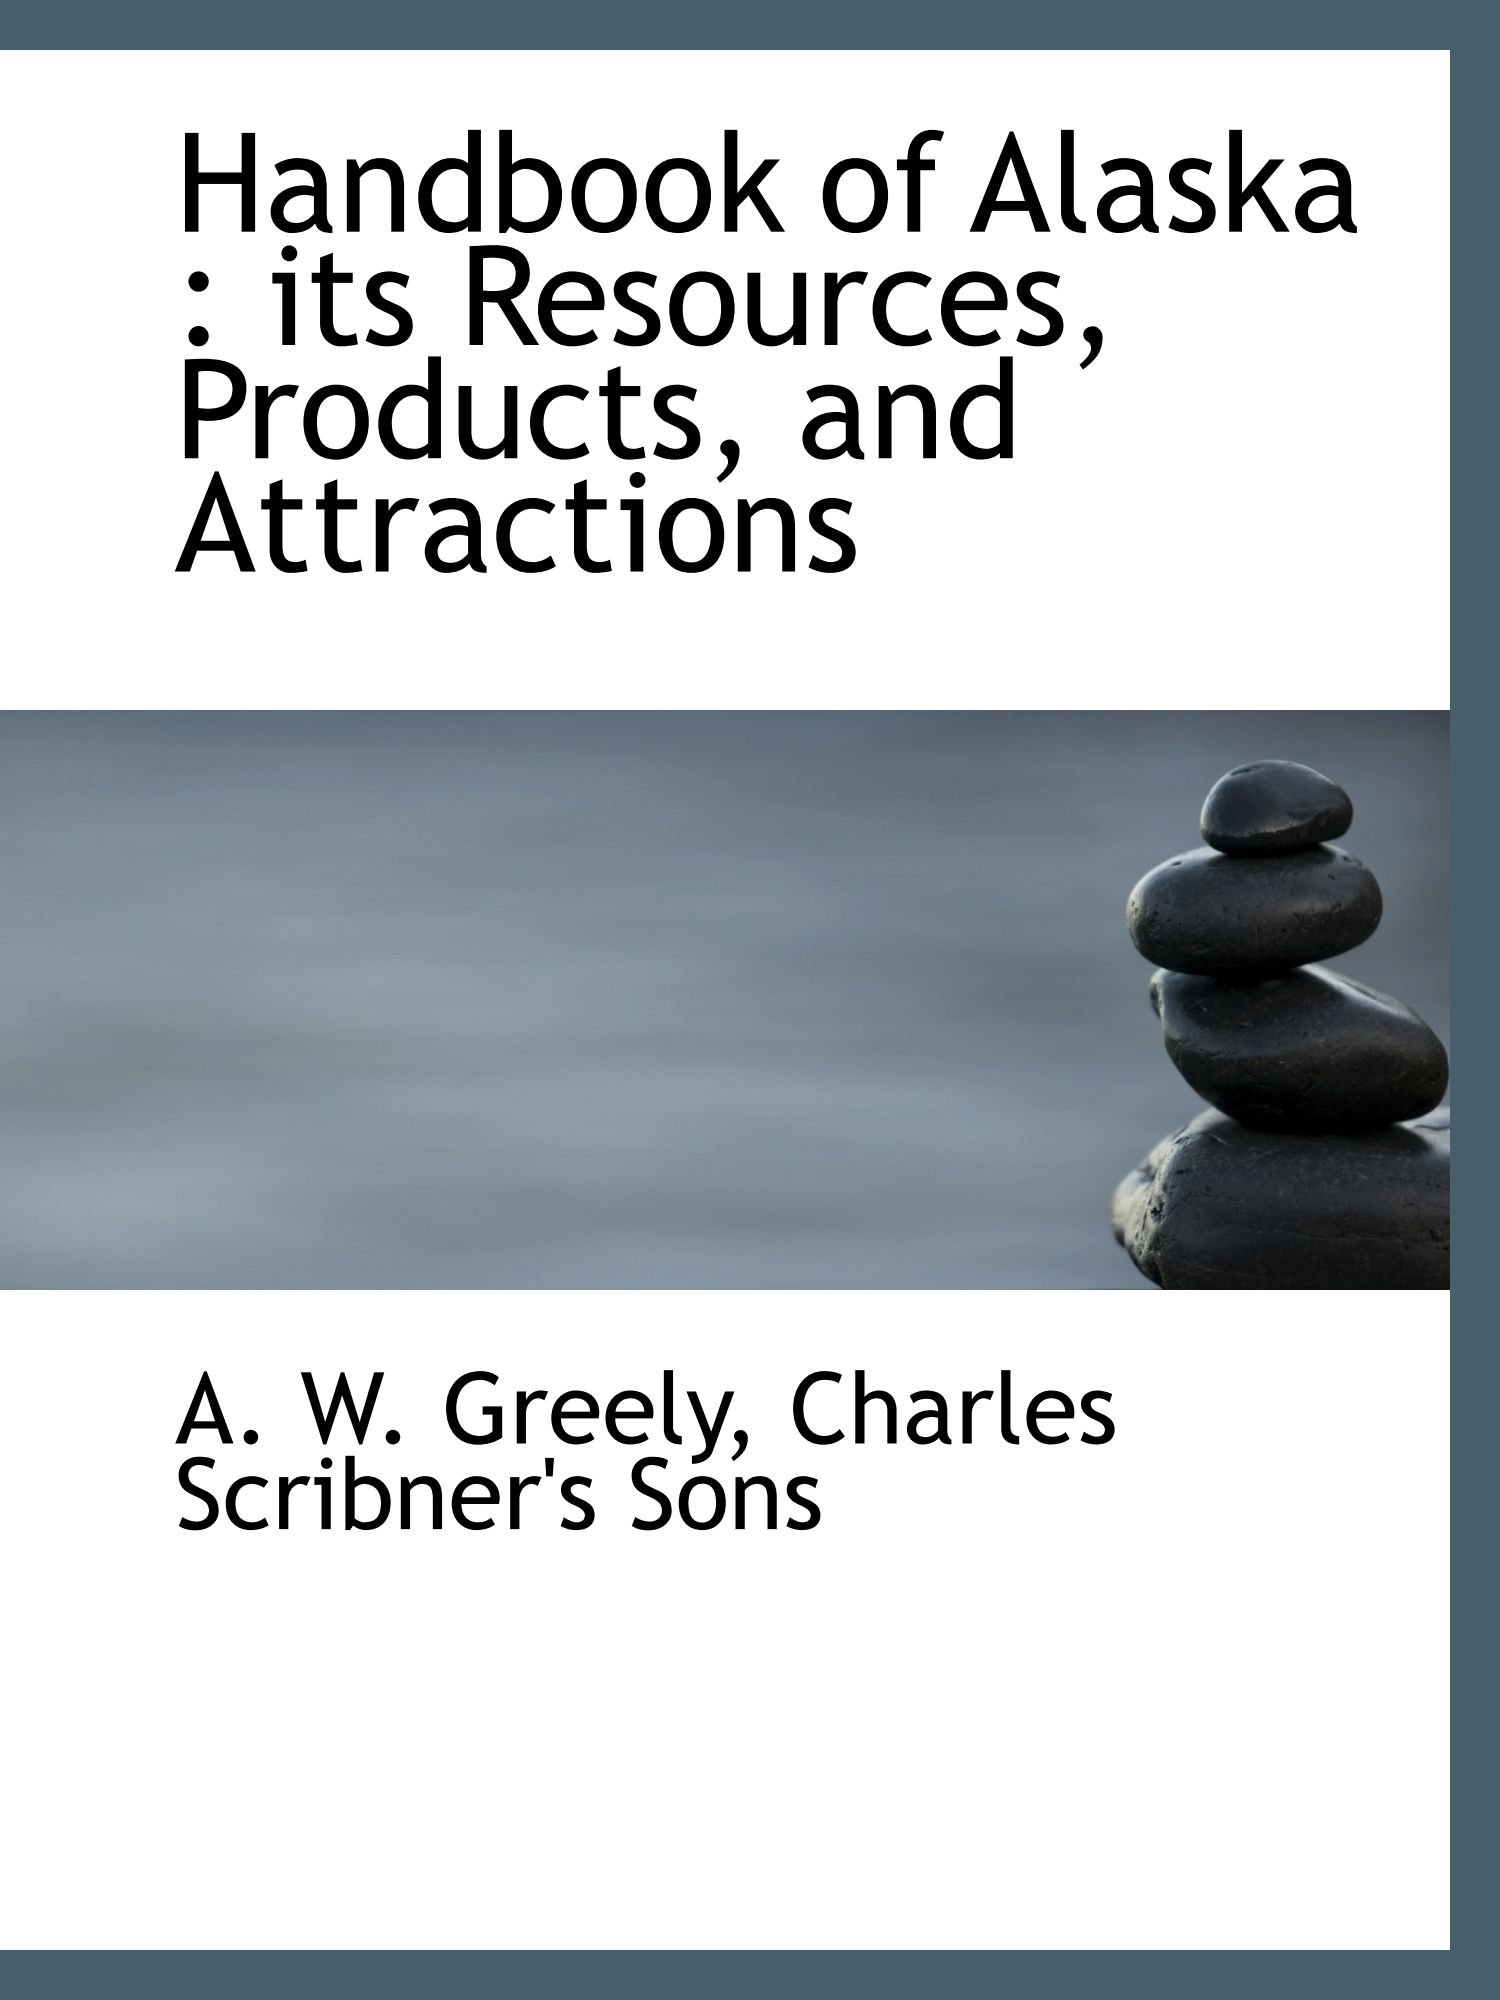 Handbook of Alaska : its Resources, Products, and Attractions pdf